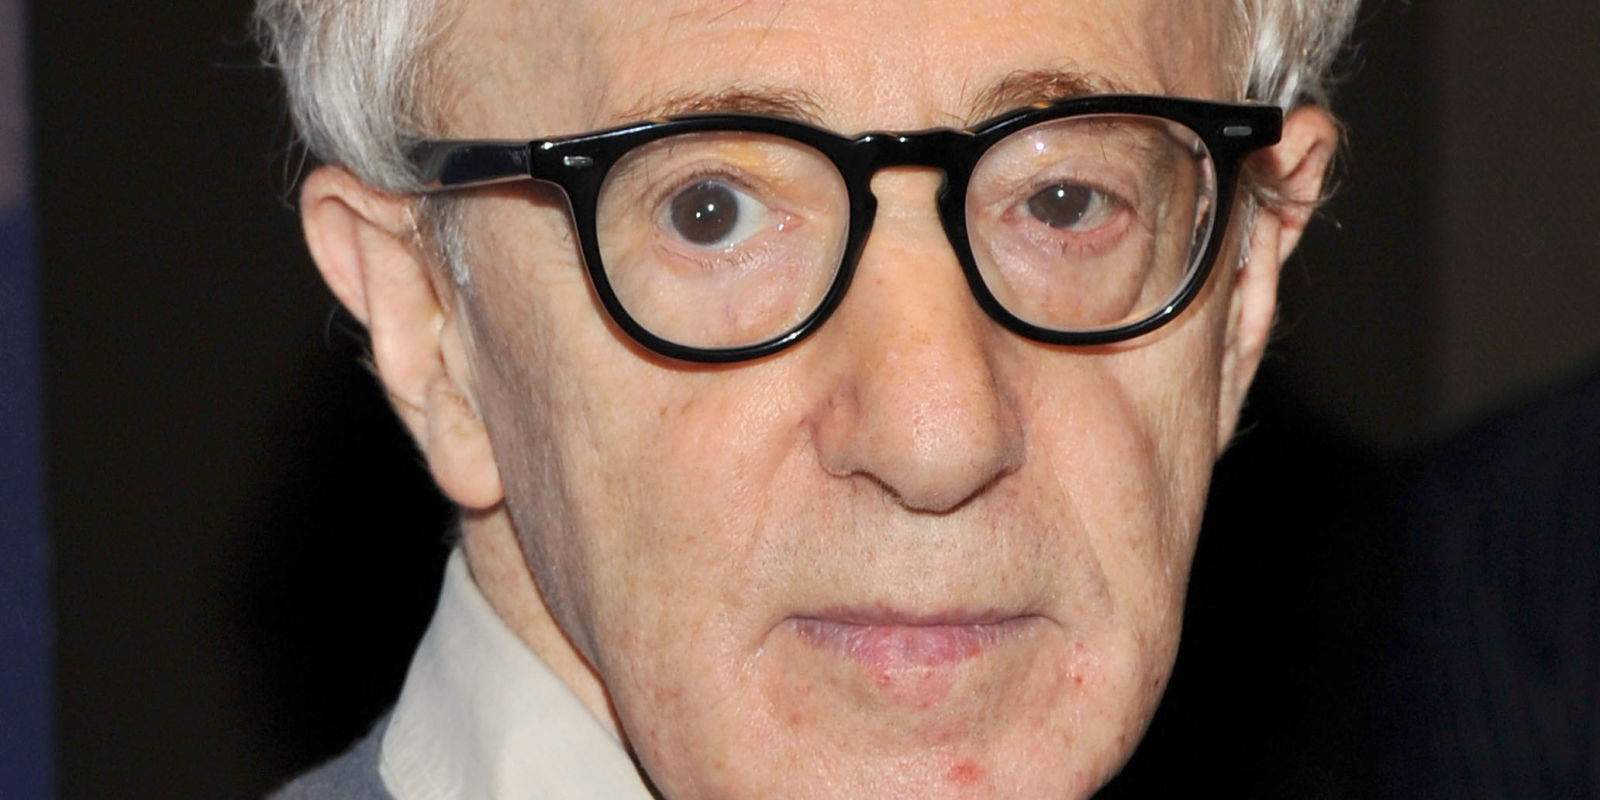 woody allen speaks out i did not molest dylan farrow